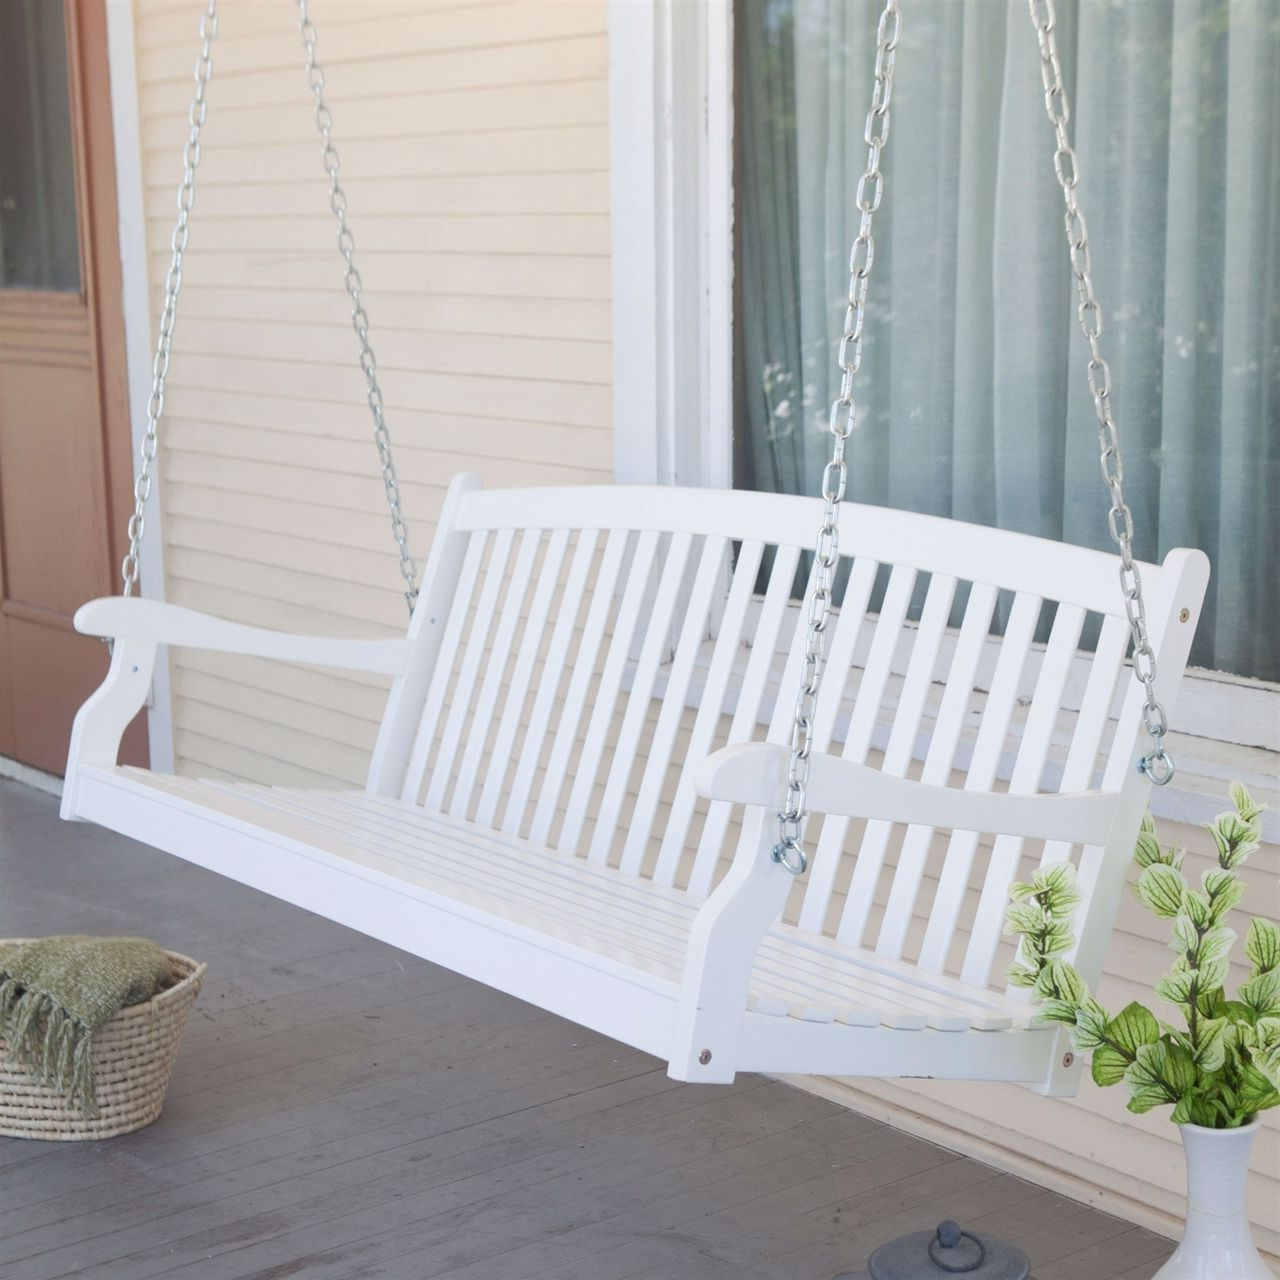 Vineyard Porch Swings Regarding Recent Curved Back 5 Ft Porch Swing, White Wood Finish, Comfort (View 30 of 30)